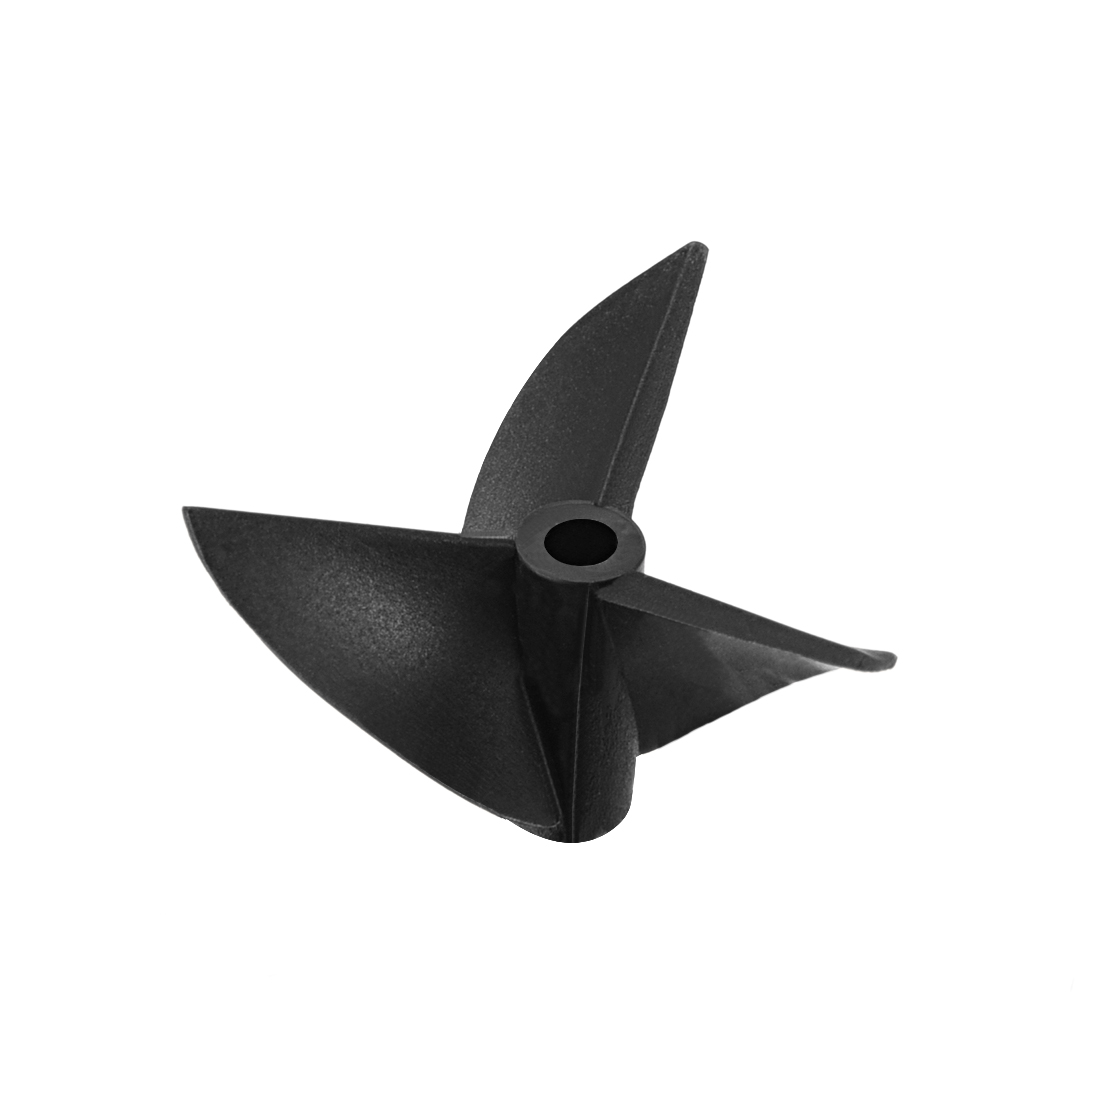 36mm Dia P/D 1.4 Black Plastic 3 Vanes CW Positive Rotating Prop Propeller 3614 for 4mm Shaft RC Model Ship Boat